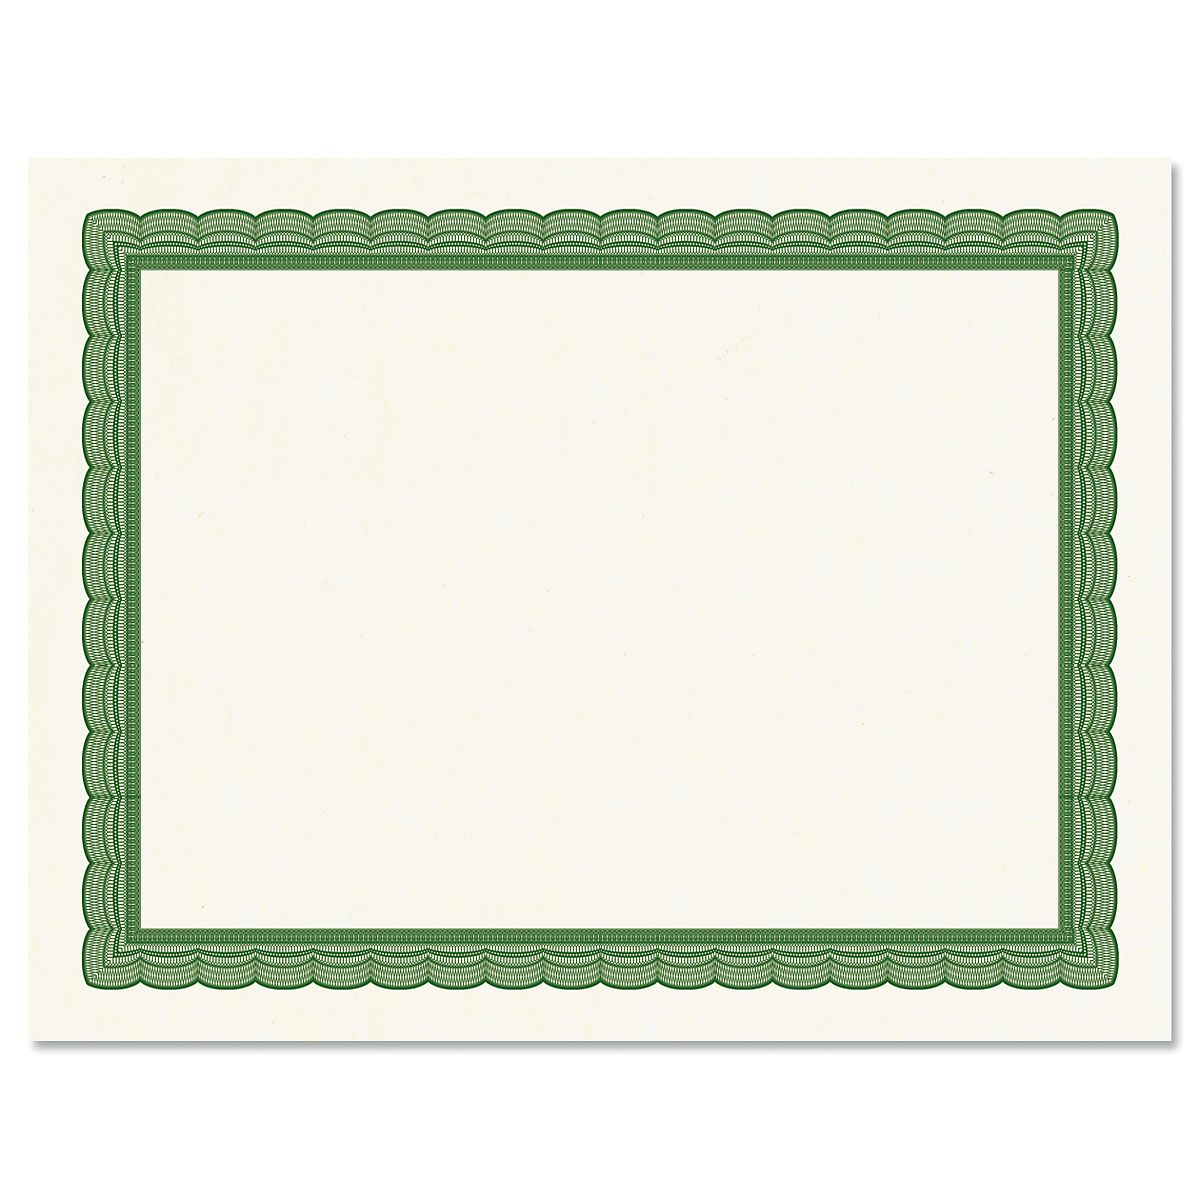 Executive Green Certificate Paper on White Parchment